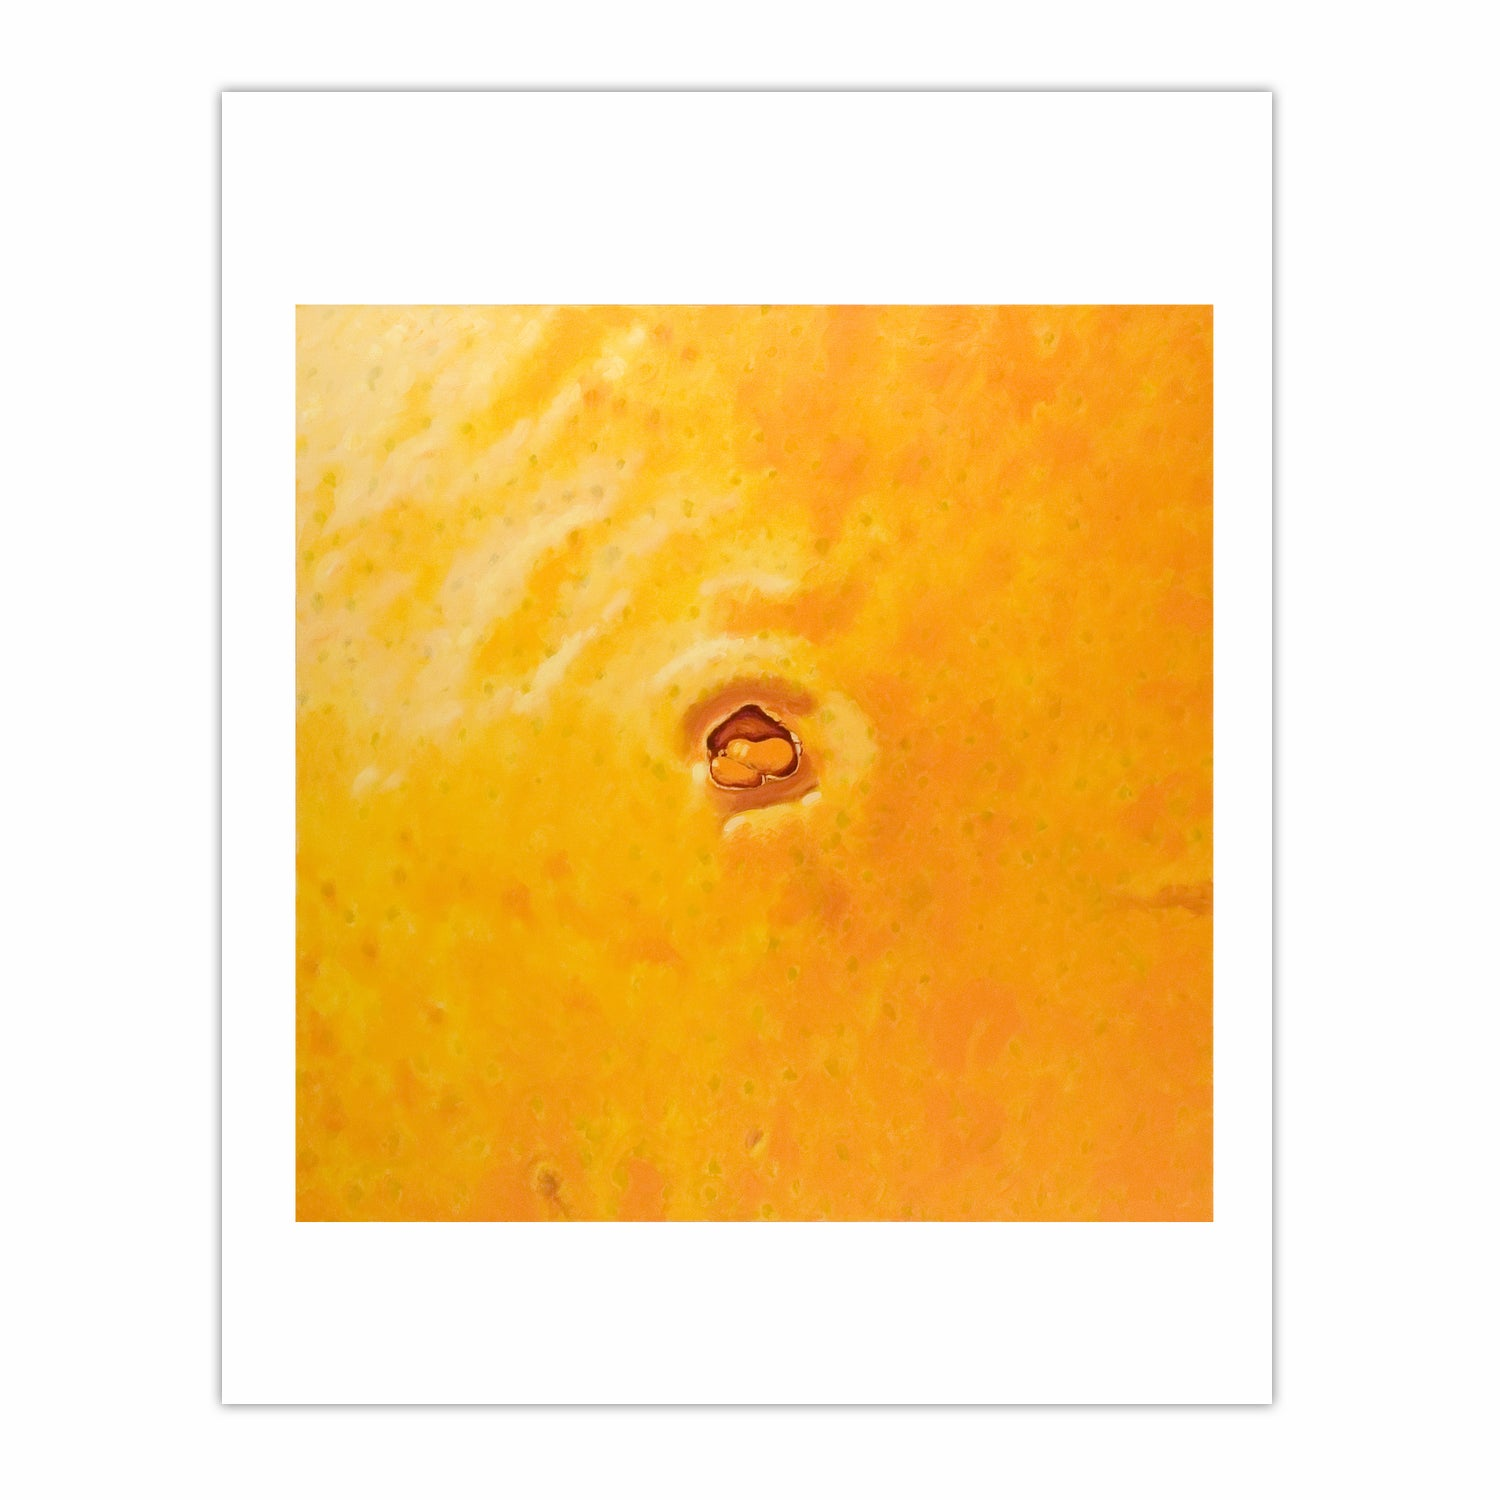 'Orange navel 2' 2005, oil on canvas, 130 x 130 cm